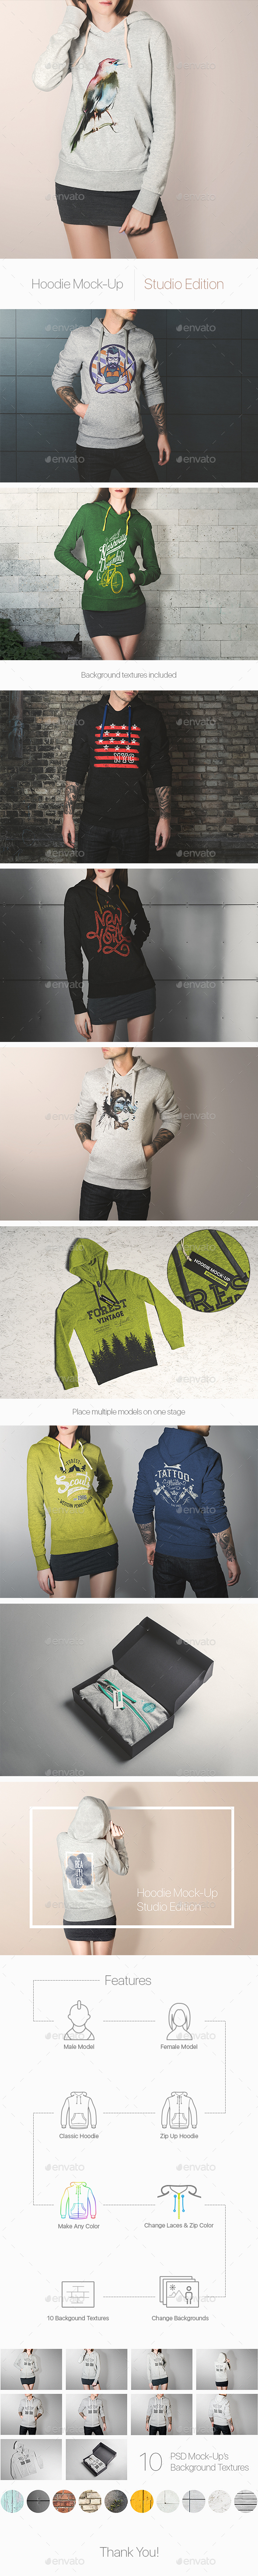 Hoodie Mock-Up / Studio Edition - Miscellaneous Apparel